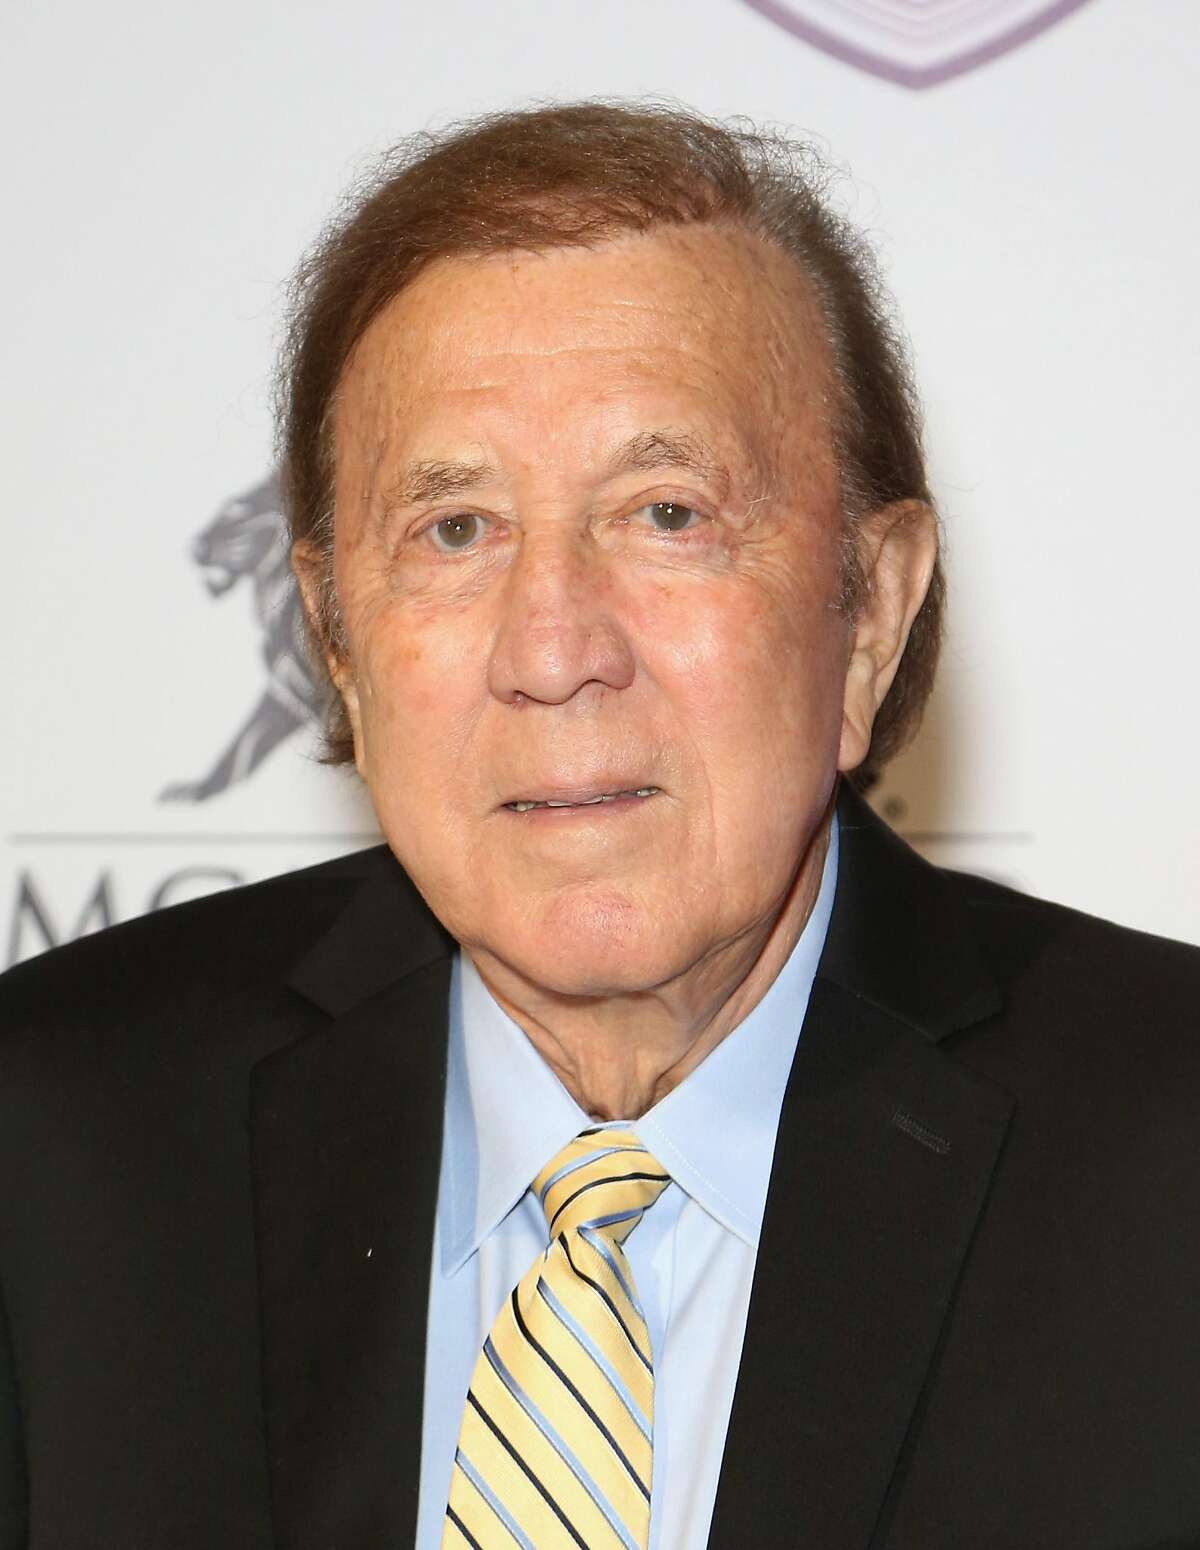 LAS VEGAS, NV - APRIL 27: Radio announcer and former Oakland Raiders head coach Tom Flores attends Keep Memory Alive's 21st annual